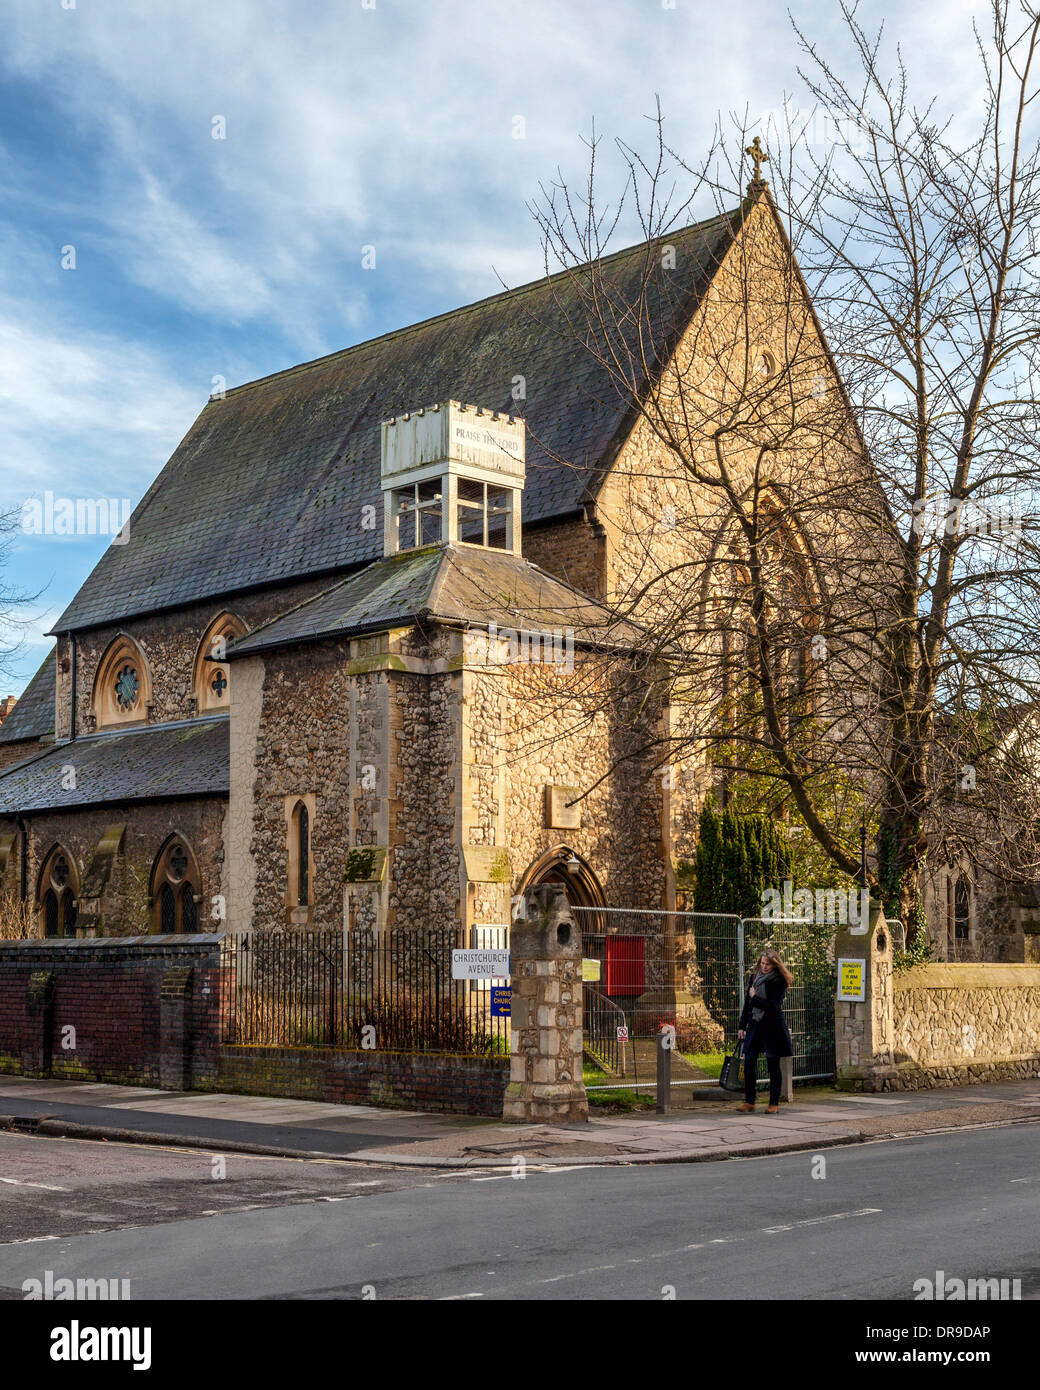 Christ Church stone building with turret and cross - structure is unsafe, dangerous and not in use Teddington Stock Photo